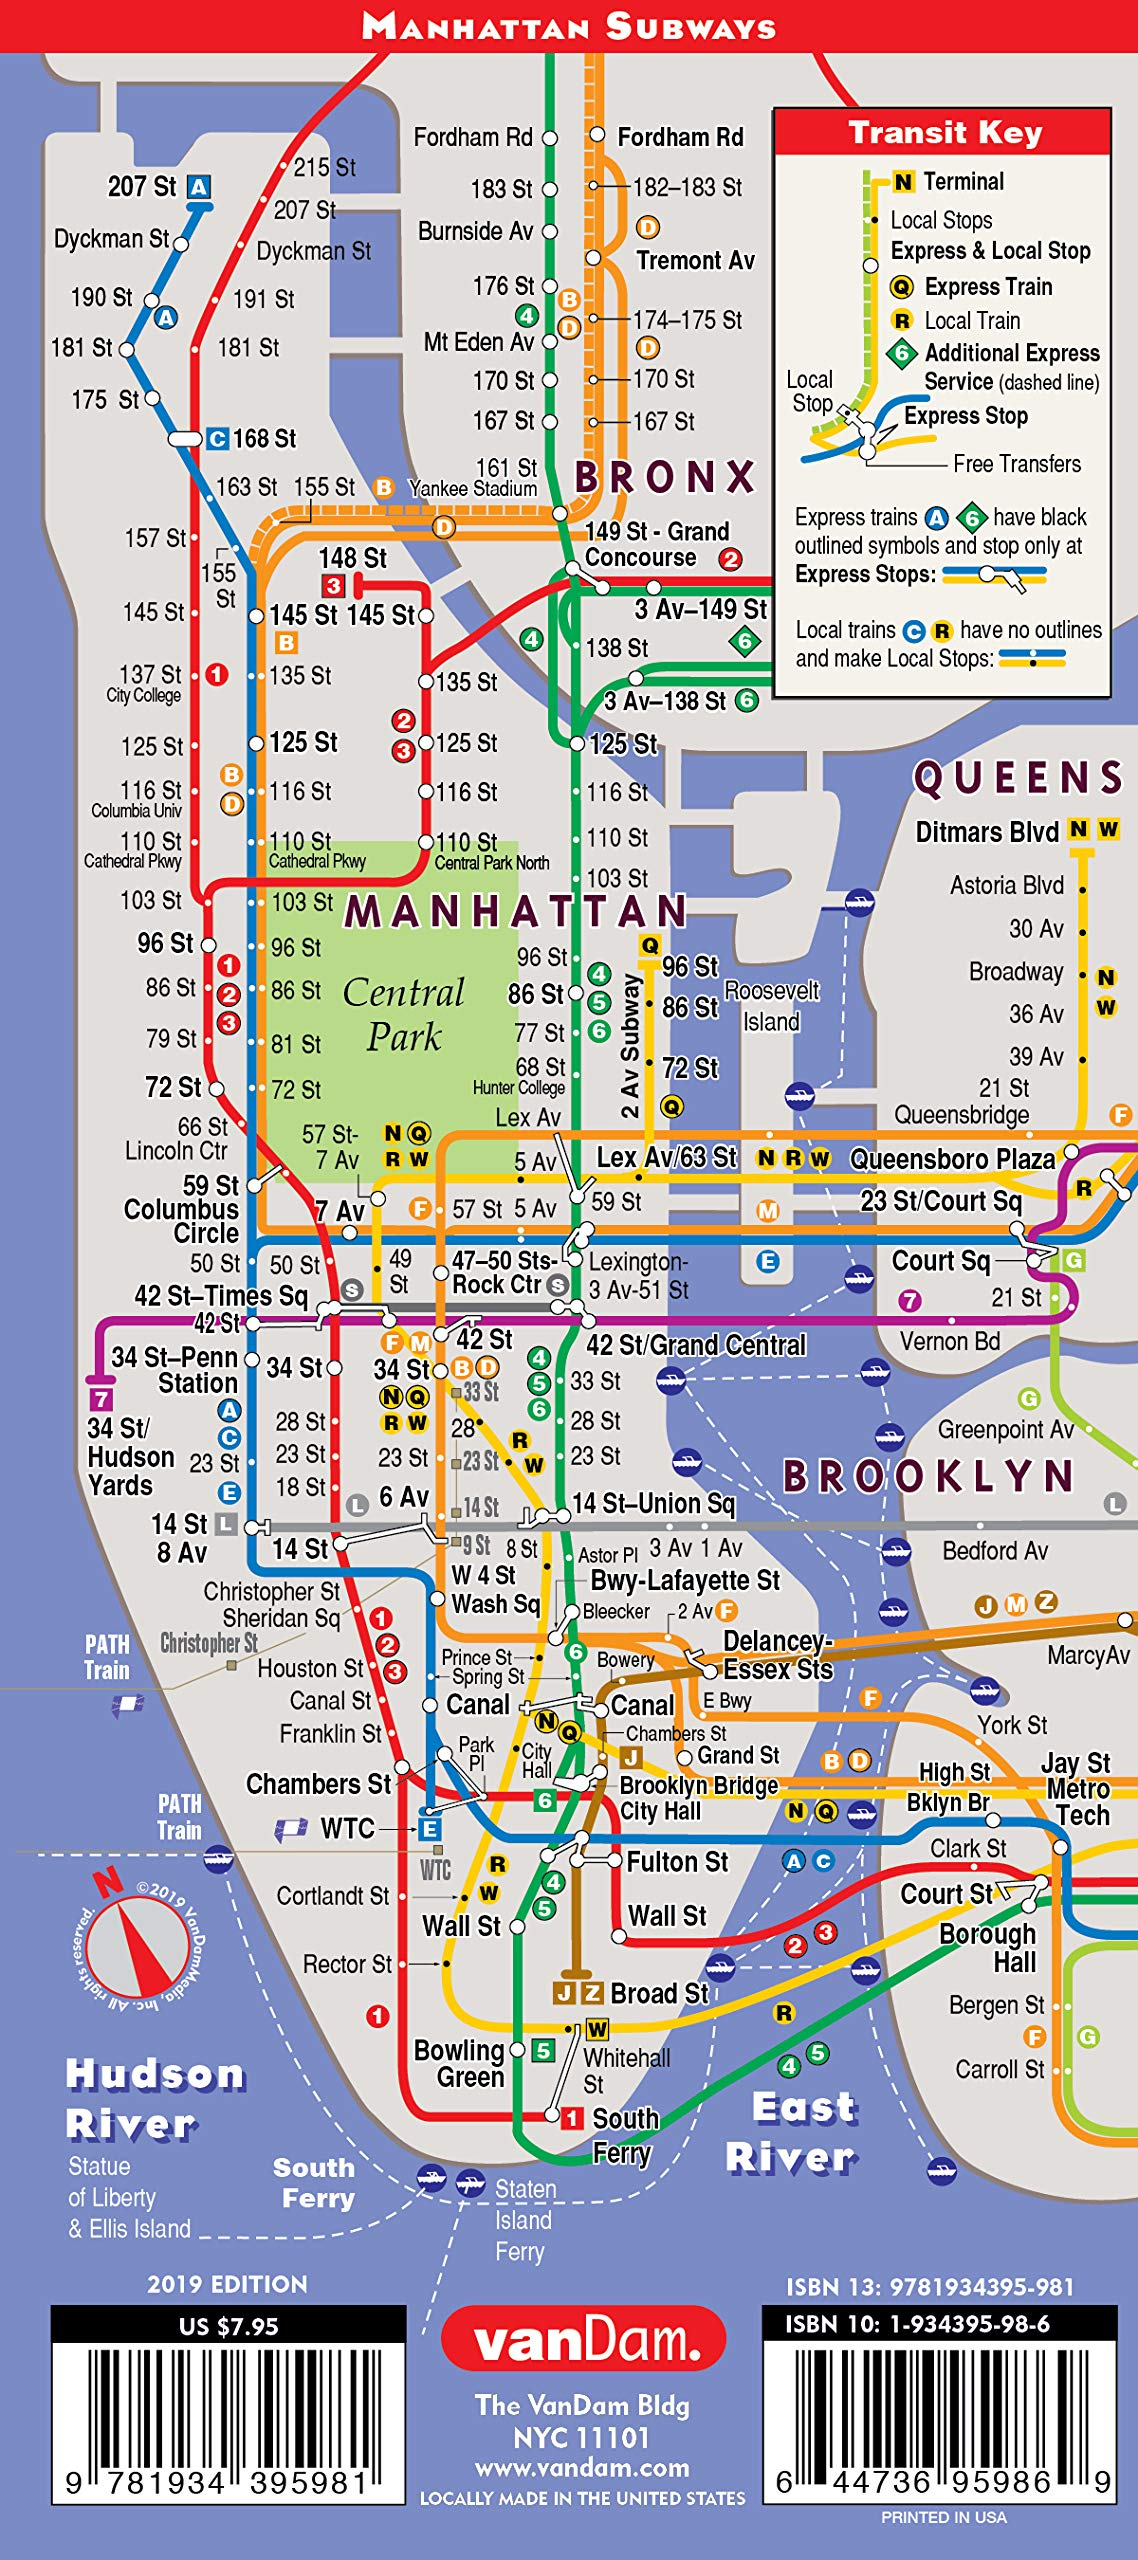 How To Read A Subway Map In Mandarin.Streetsmart Nyc Map 9 11 Edition By Vandam Laminated City Street